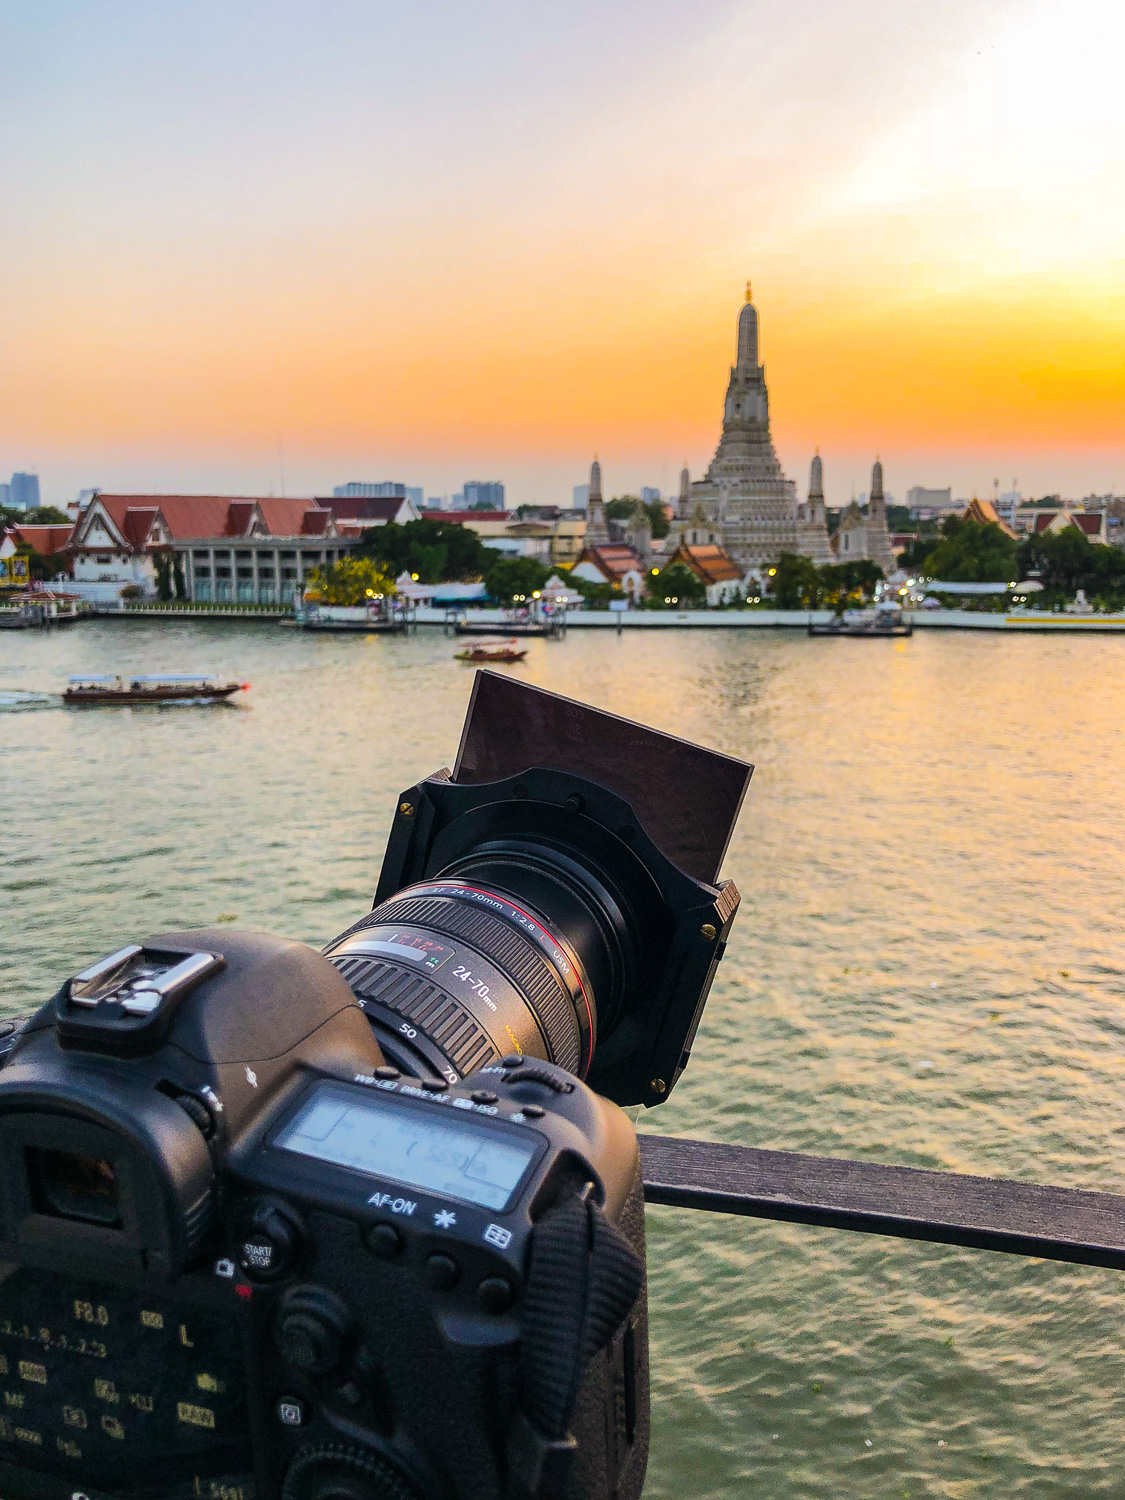 Canon camera with filter on the lens - The First 10 Things You Need to Buy After Your Camera for Travel Photography